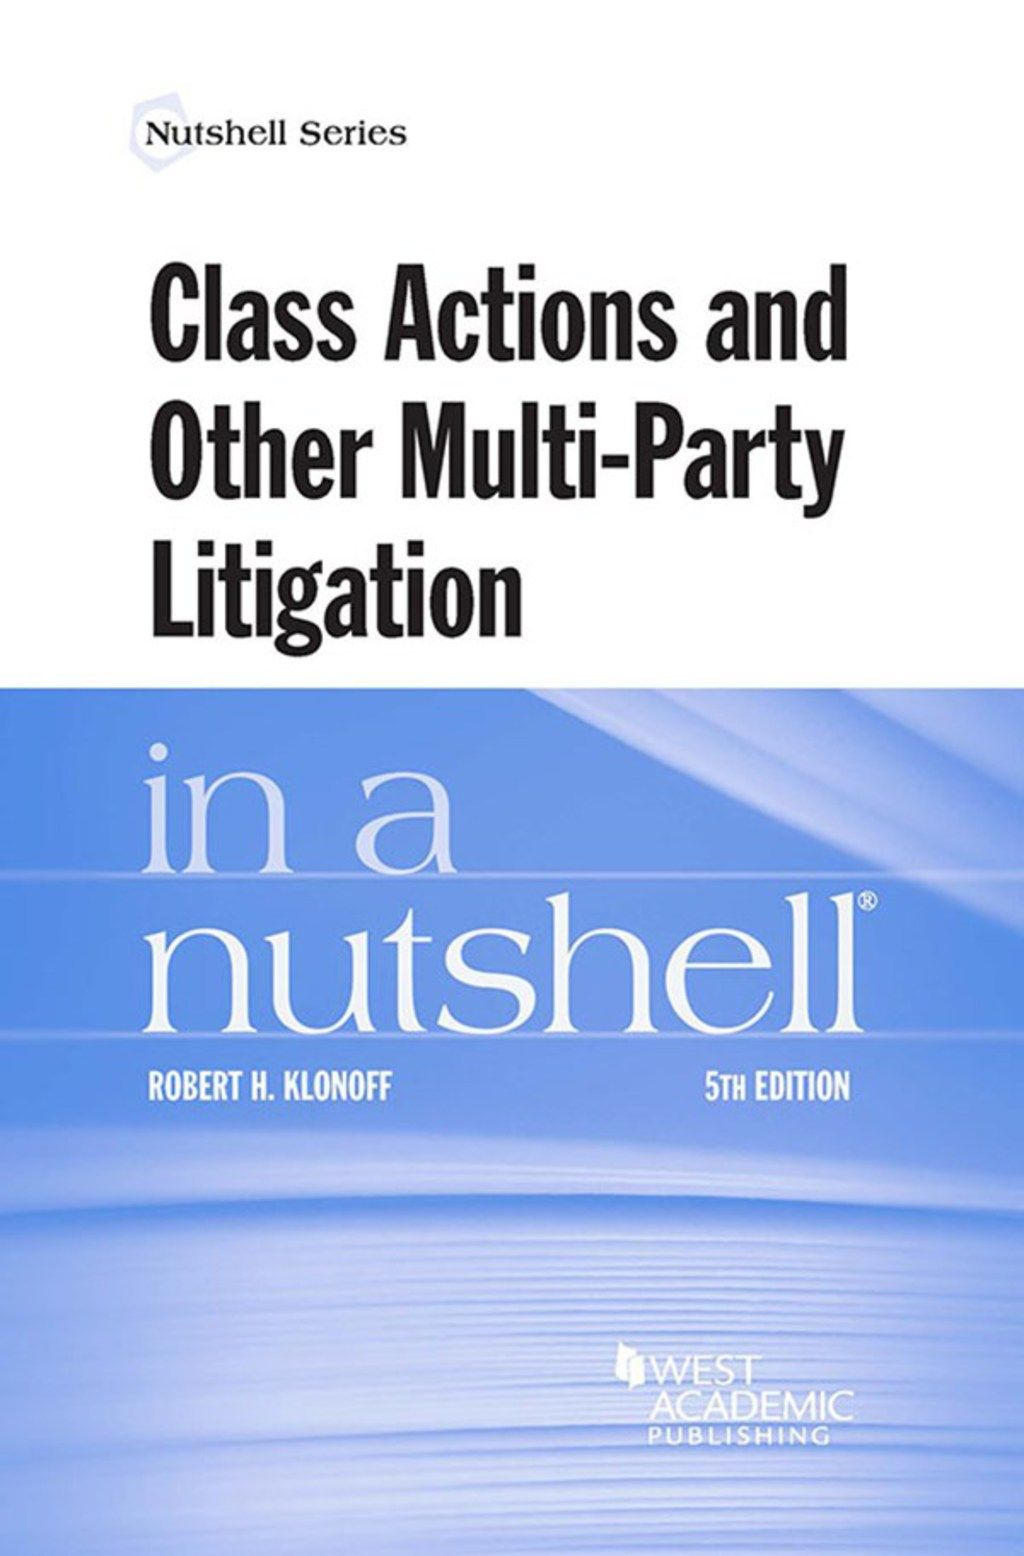 Klonoff's Class Actions and Other MultiParty Litigation